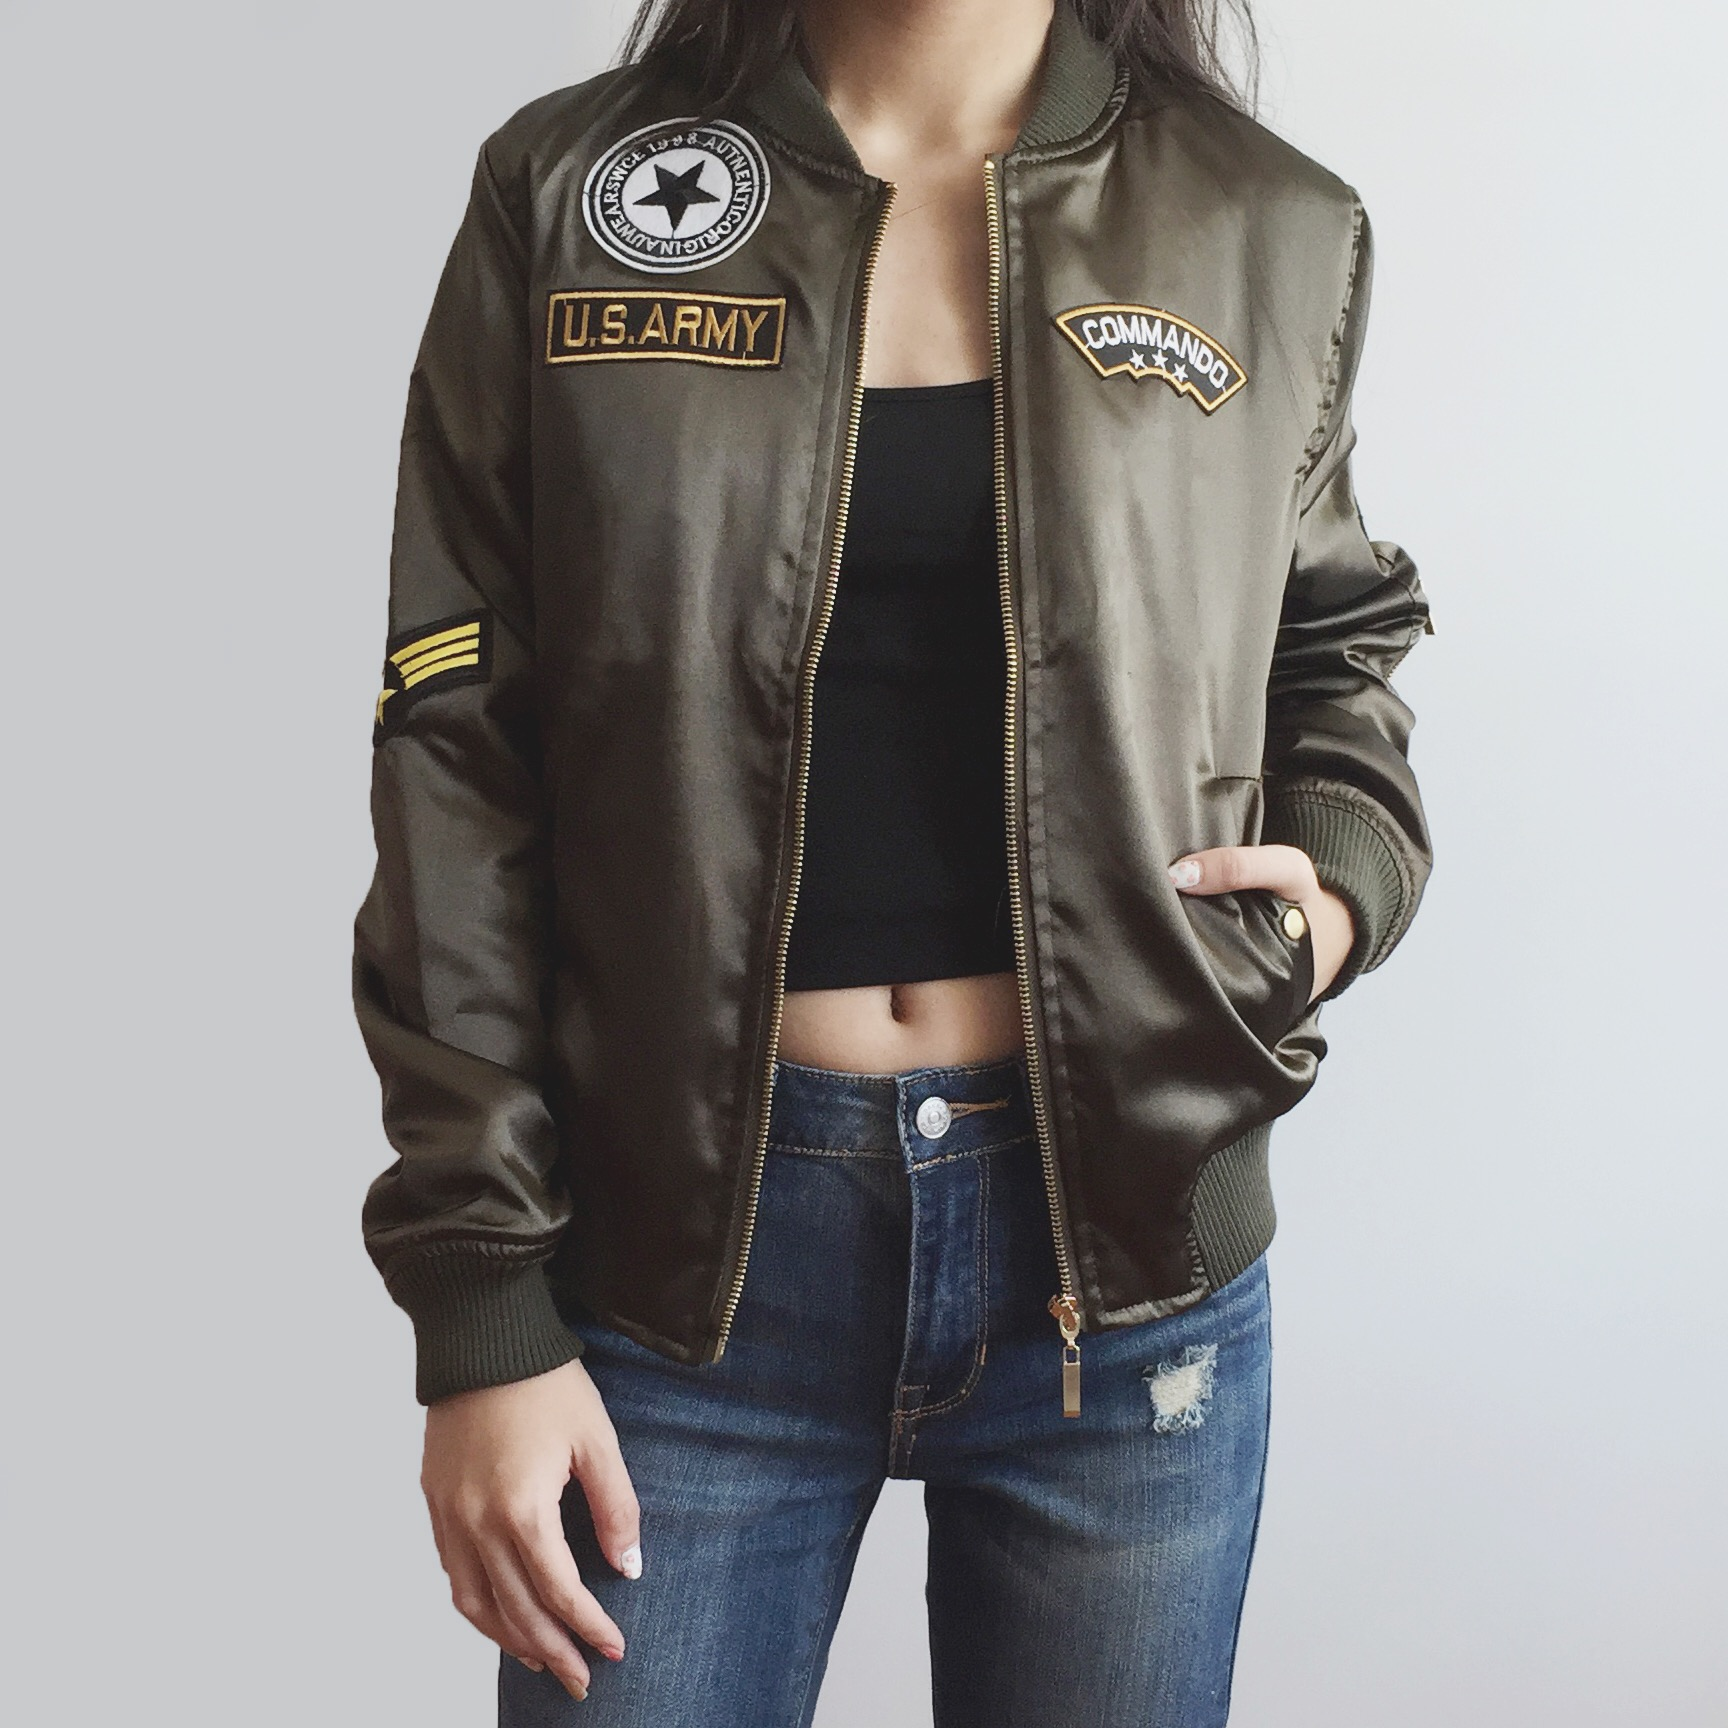 Army Patch Bomber Jacket (Olive) · Megoosta Fashion · Free ...